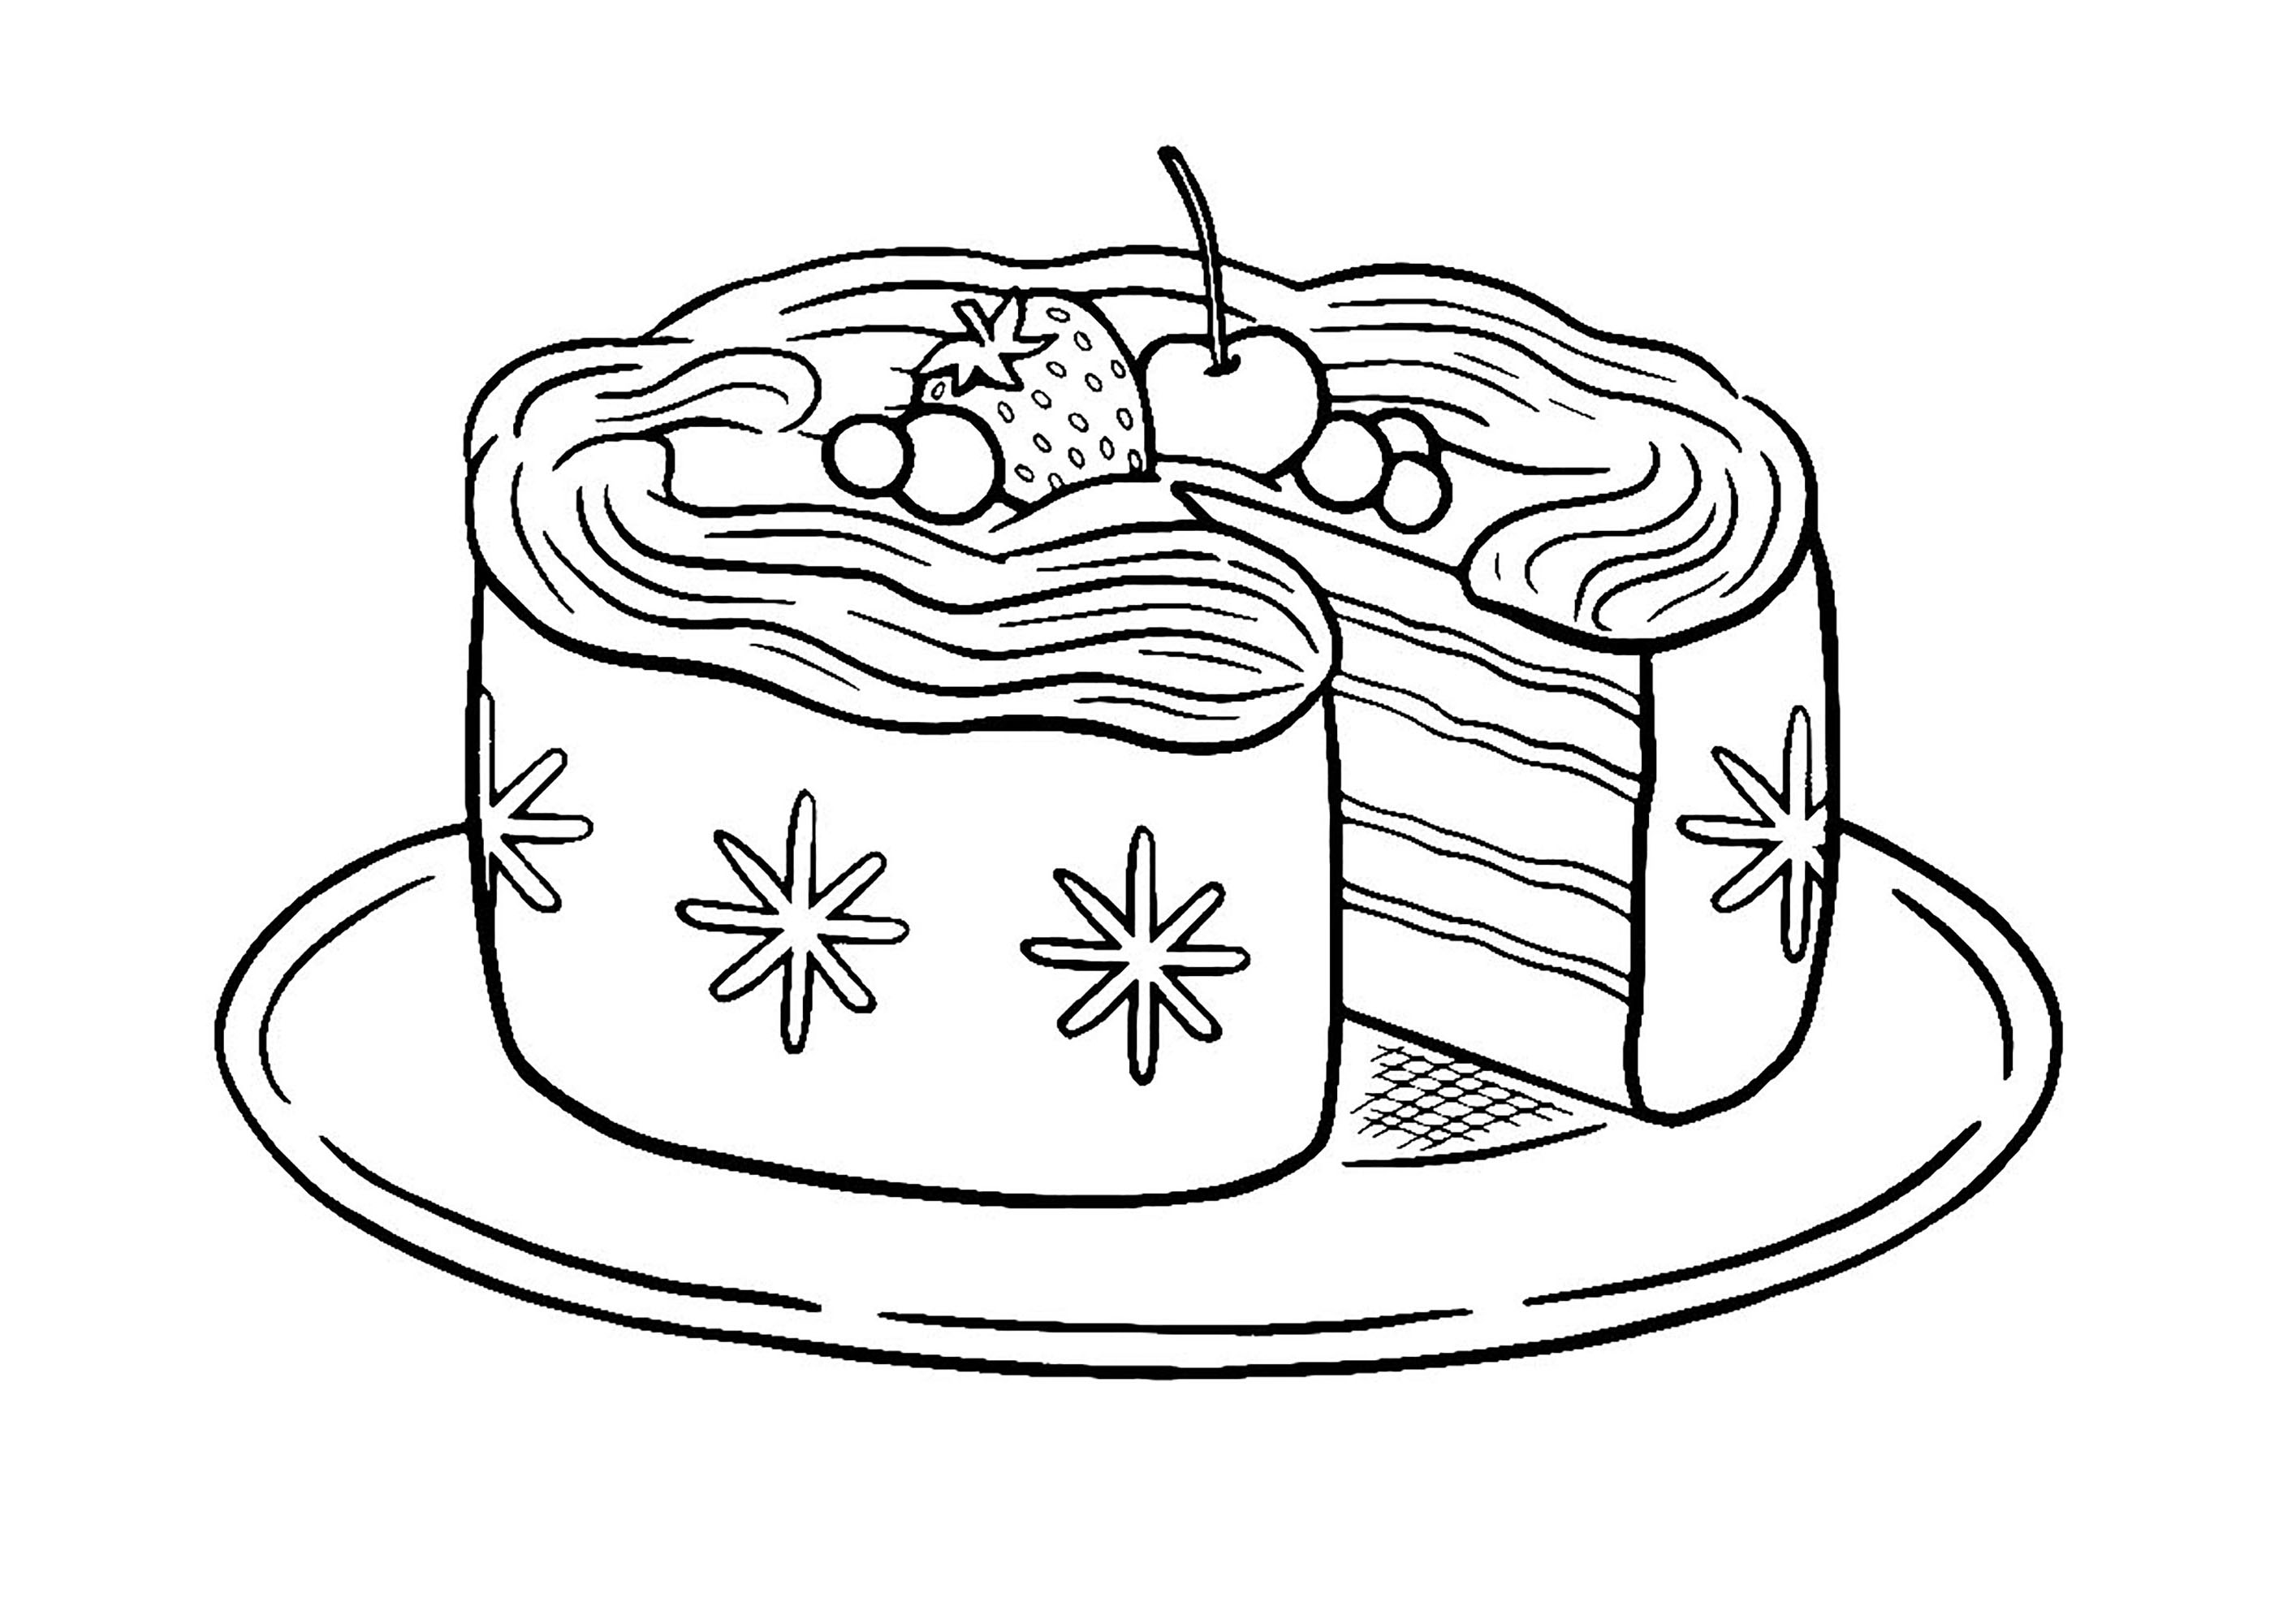 Cupcakes and cakes free to color for kids - Cupcakes And ...